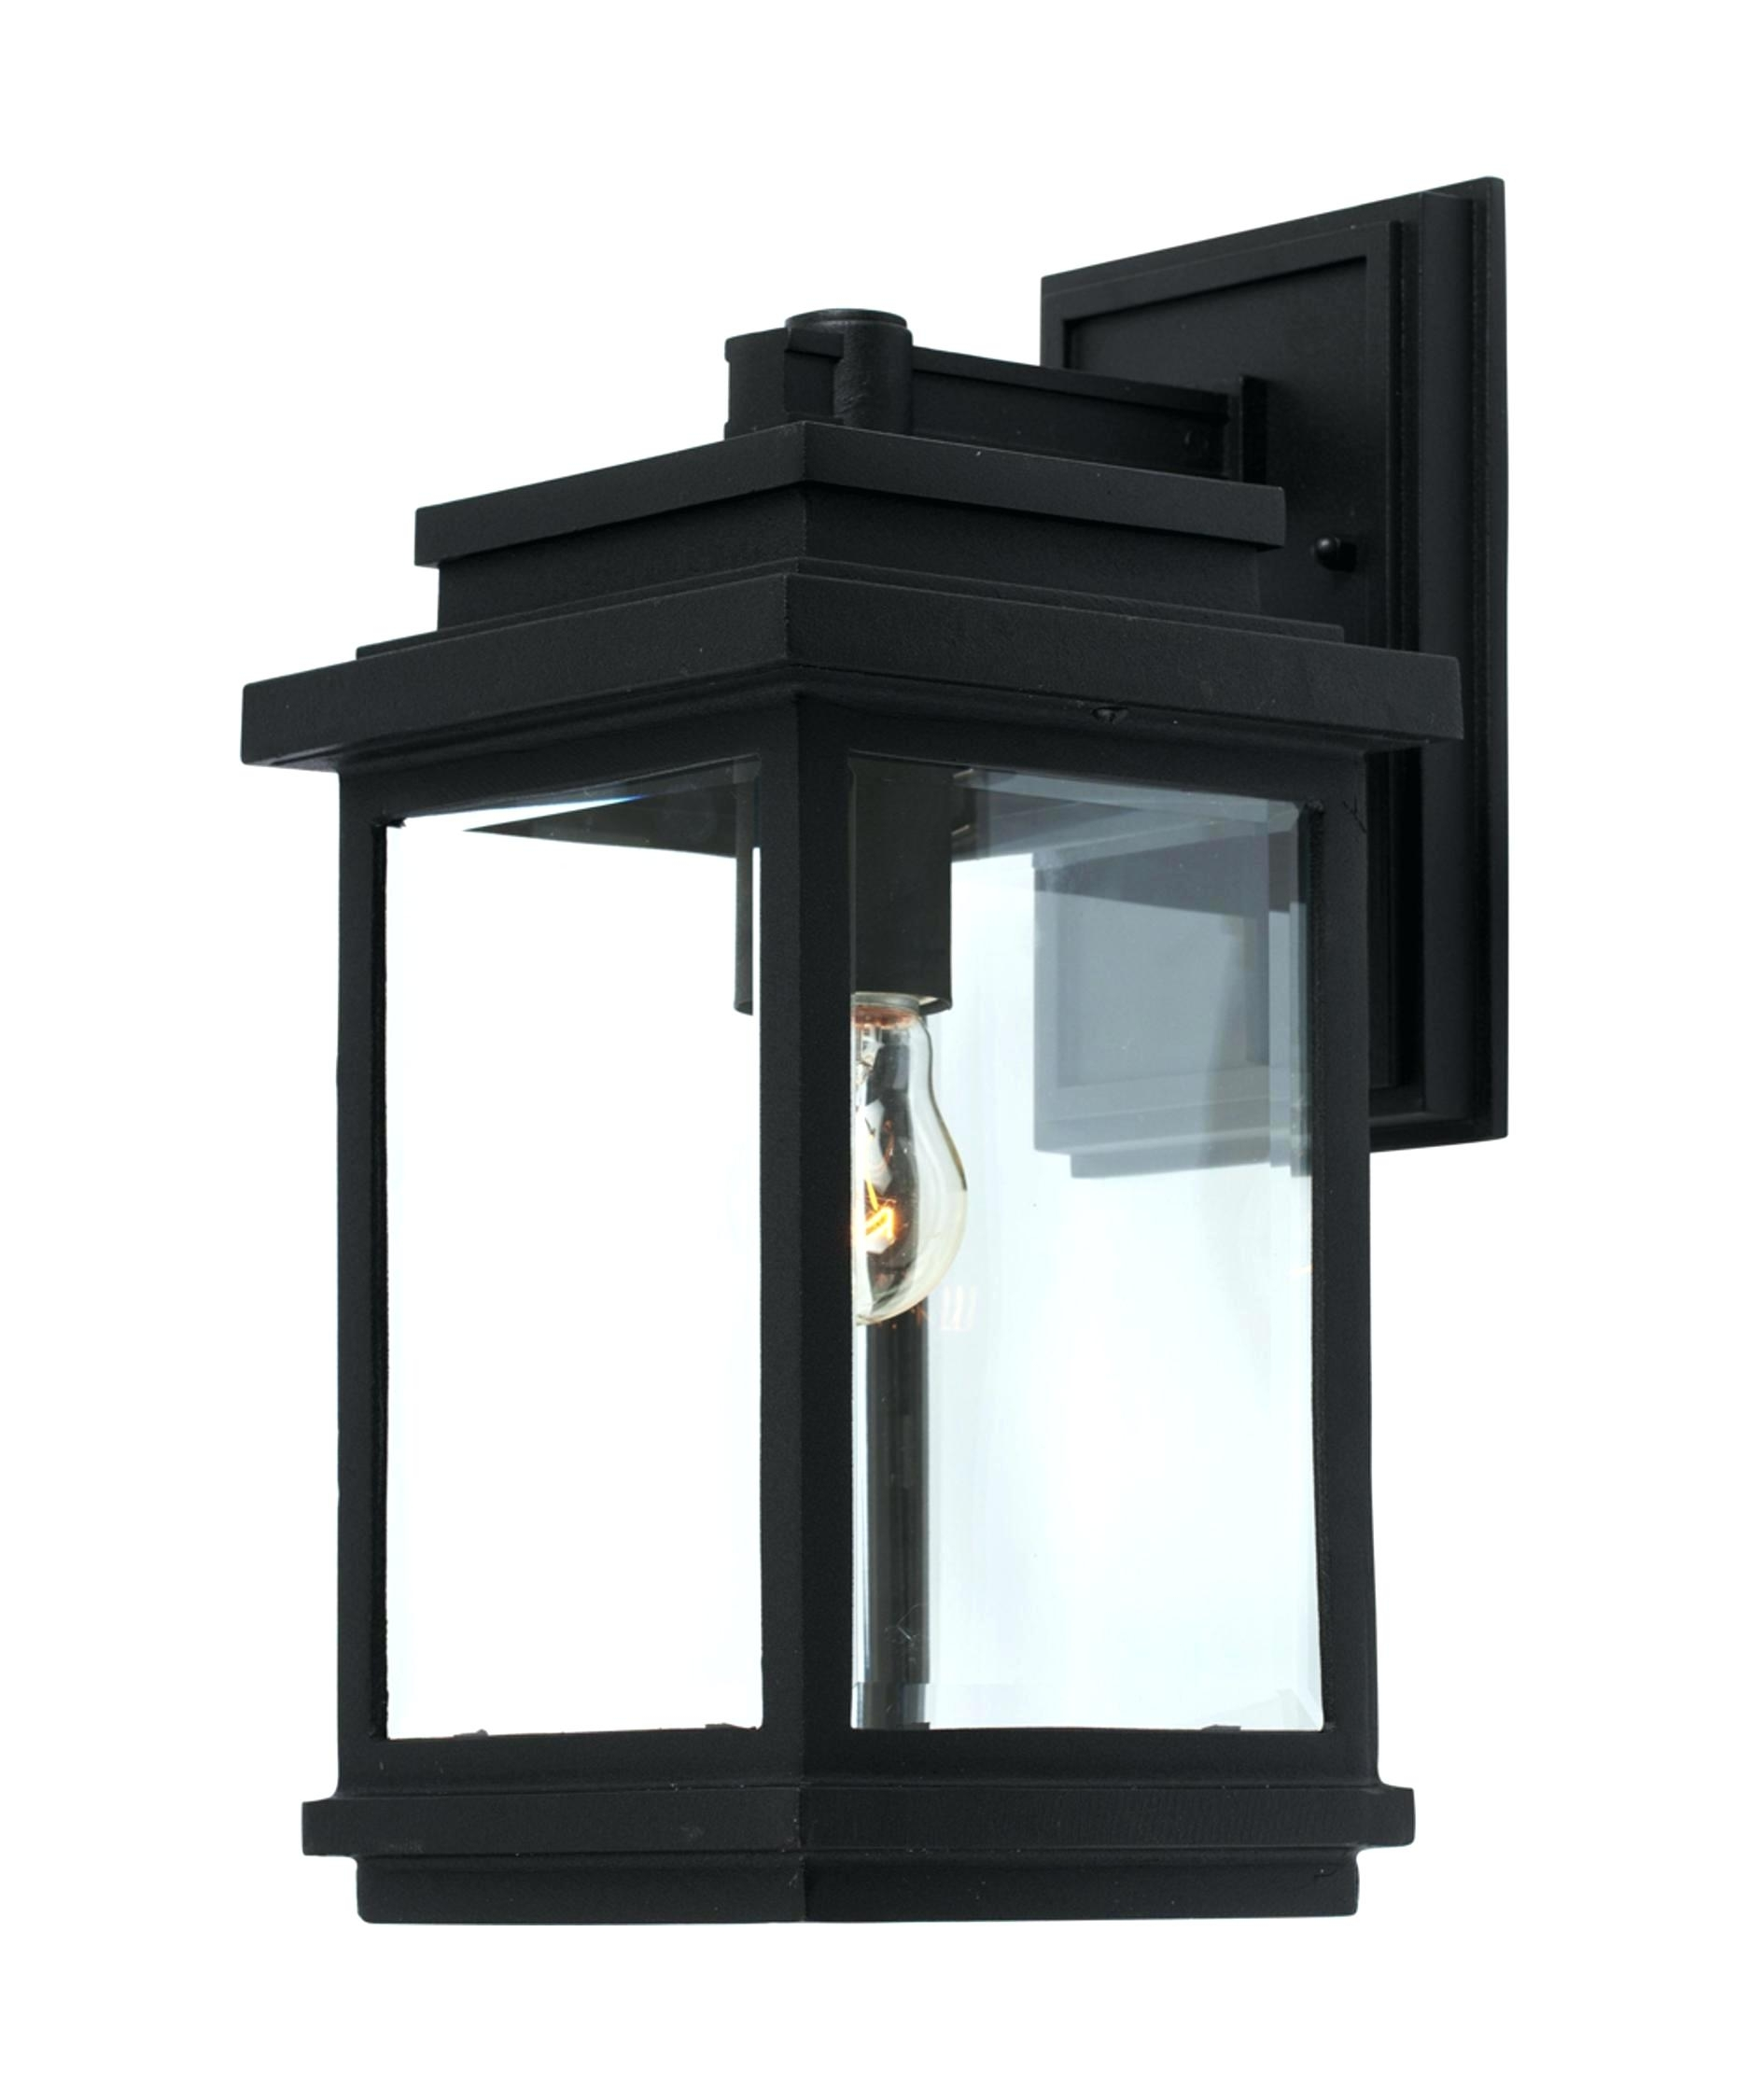 15 Inspirations Of Eglo Lighting Sidney Outdoor Wall Lights With Motion Sensor